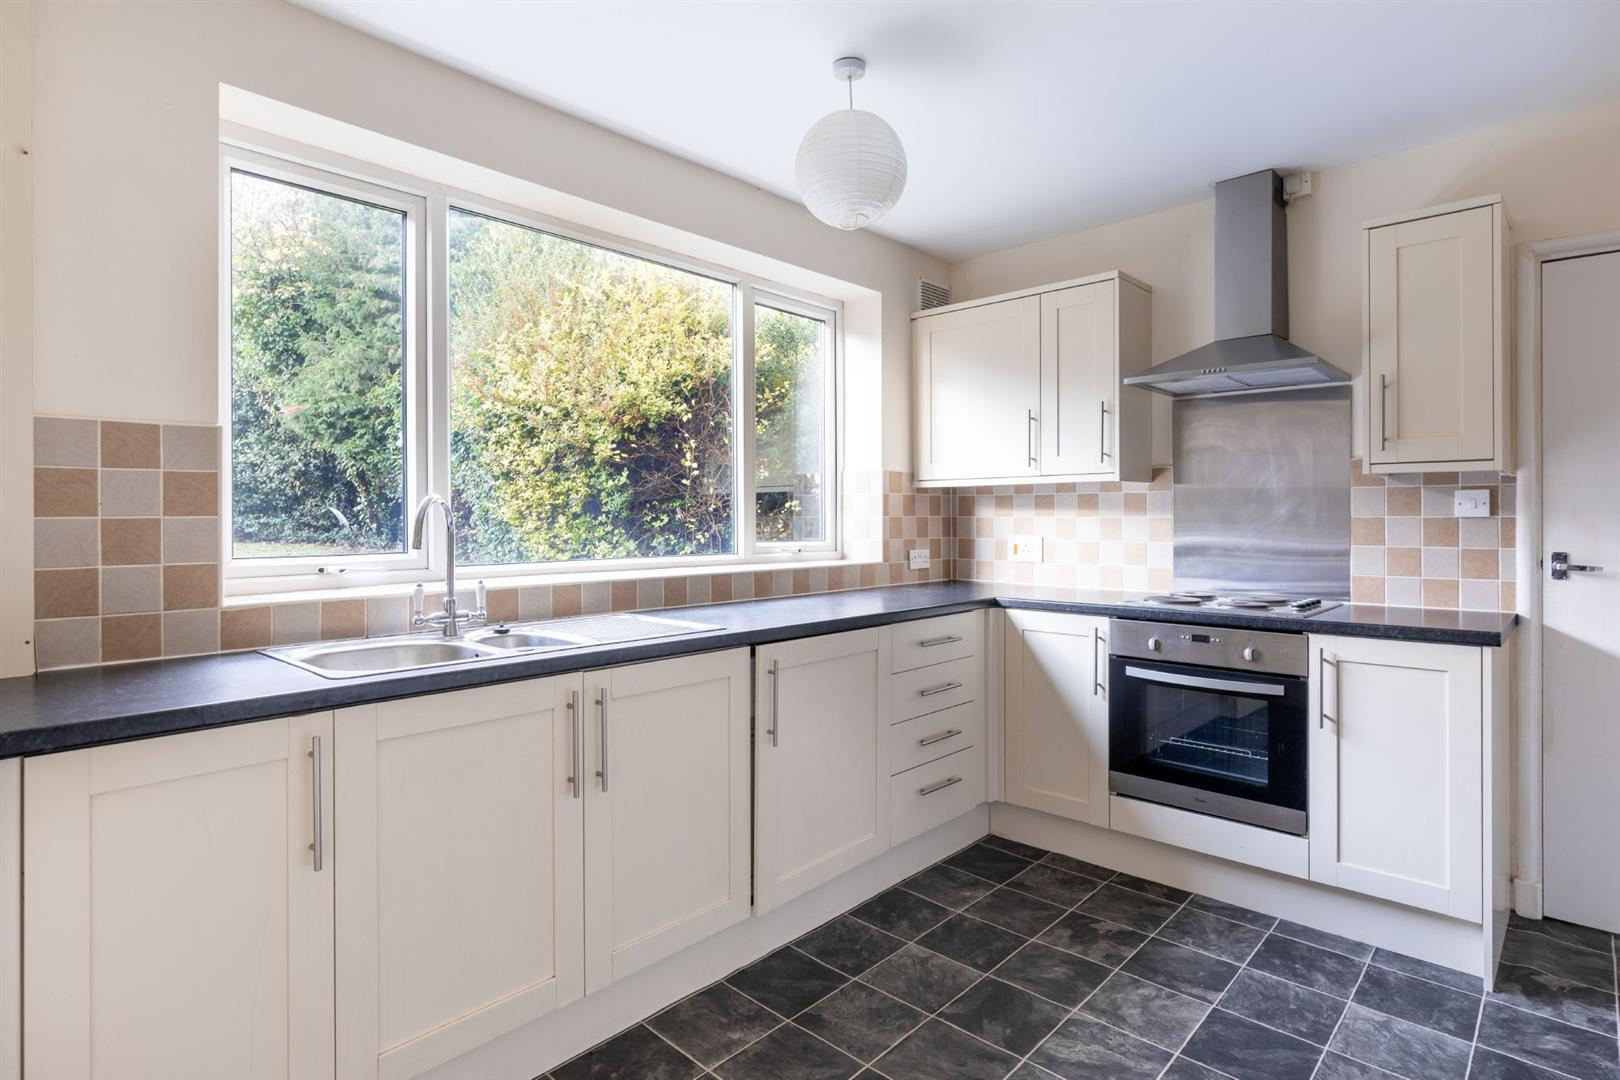 4 bed semi-detached house to rent in Gosforth, NE3 5TA 3